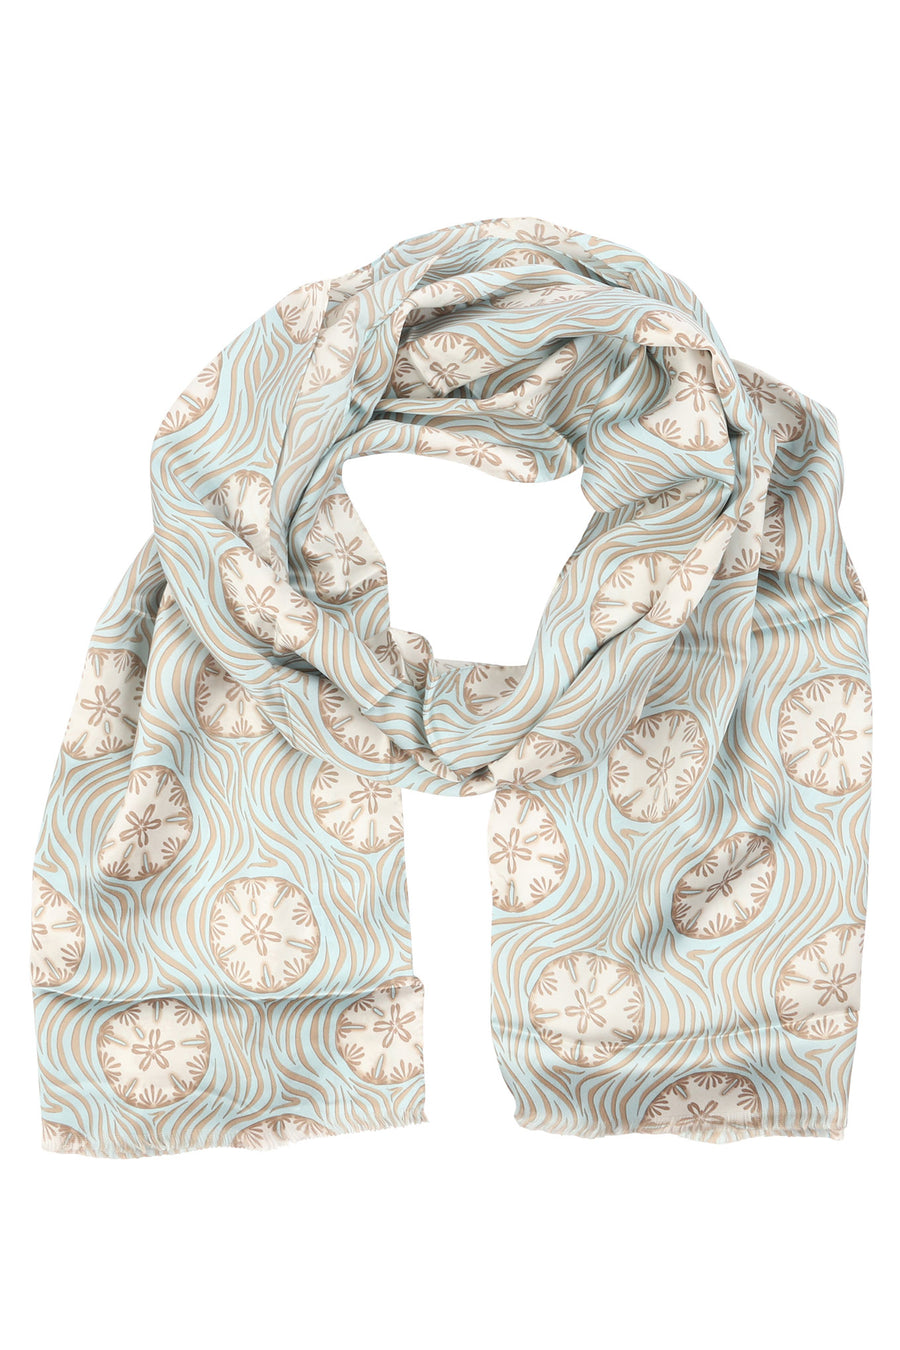 Lotty B Silk Charmeuse Long Scarf (Sand Dollar Repeat Taupe) Headscarf Mustique